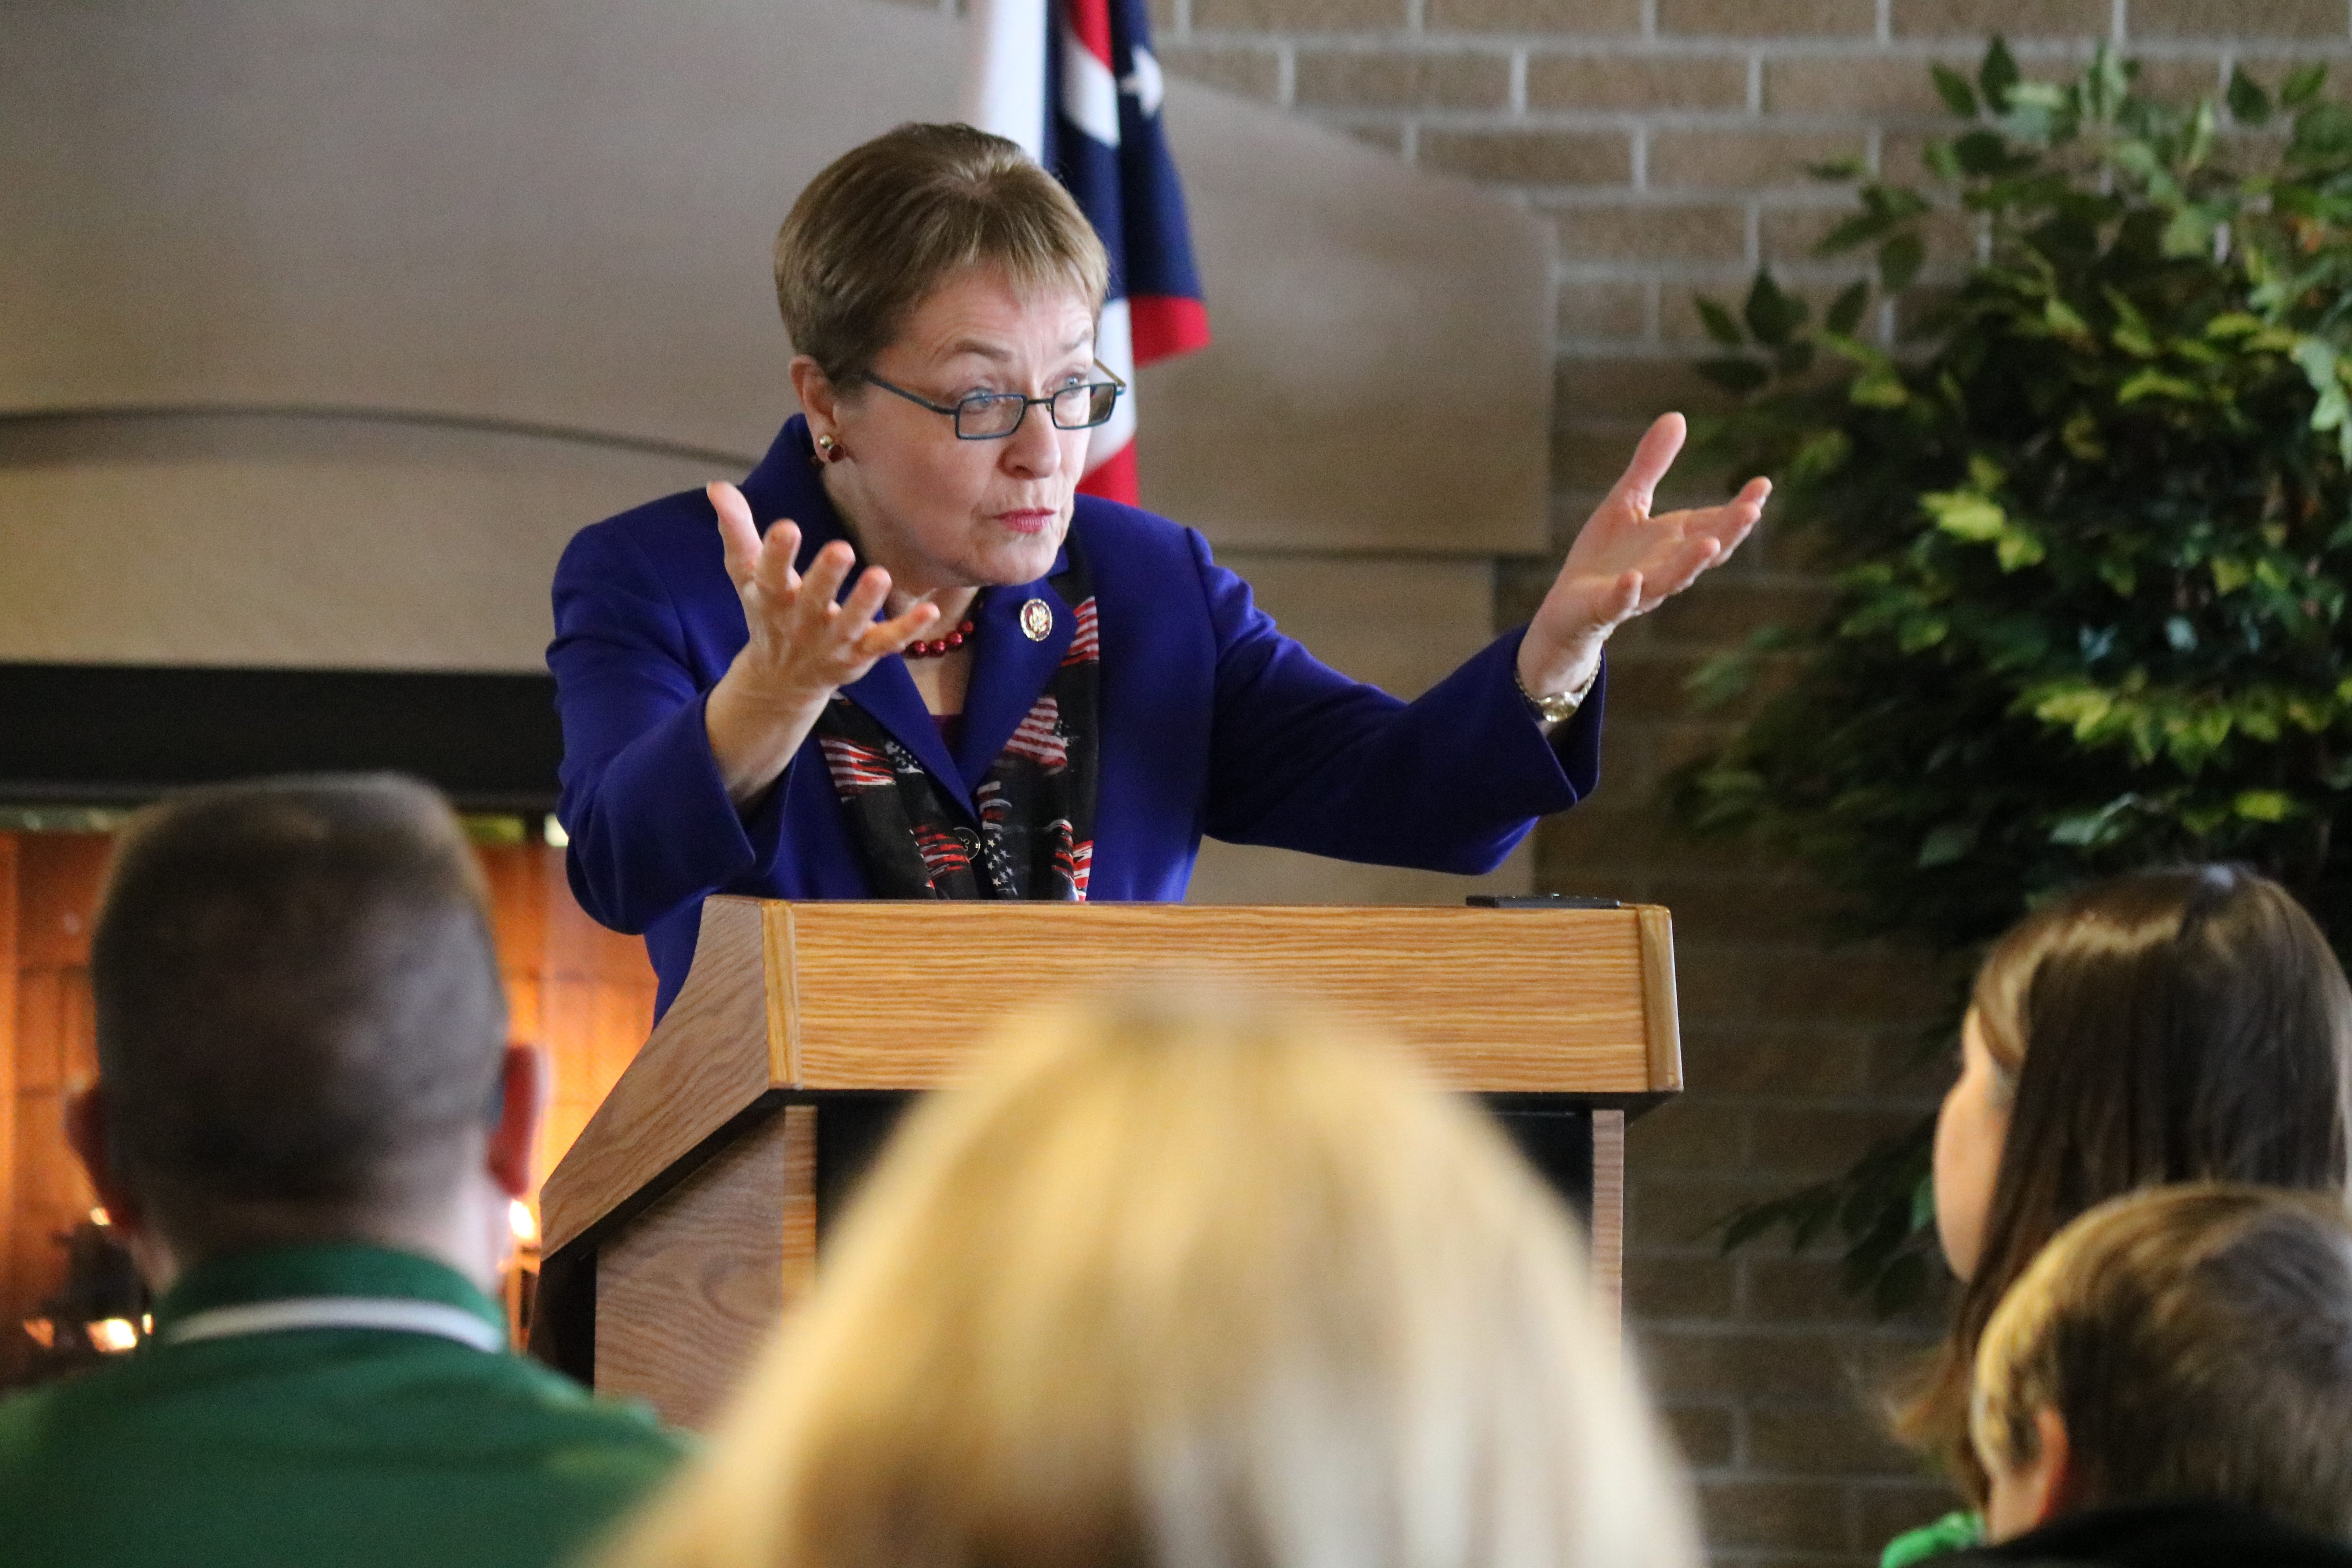 U.S. Rep. Marcy Kaptur, D-Toledo, speaks to the service academy nominees and their families on Saturday at Camp Perry.